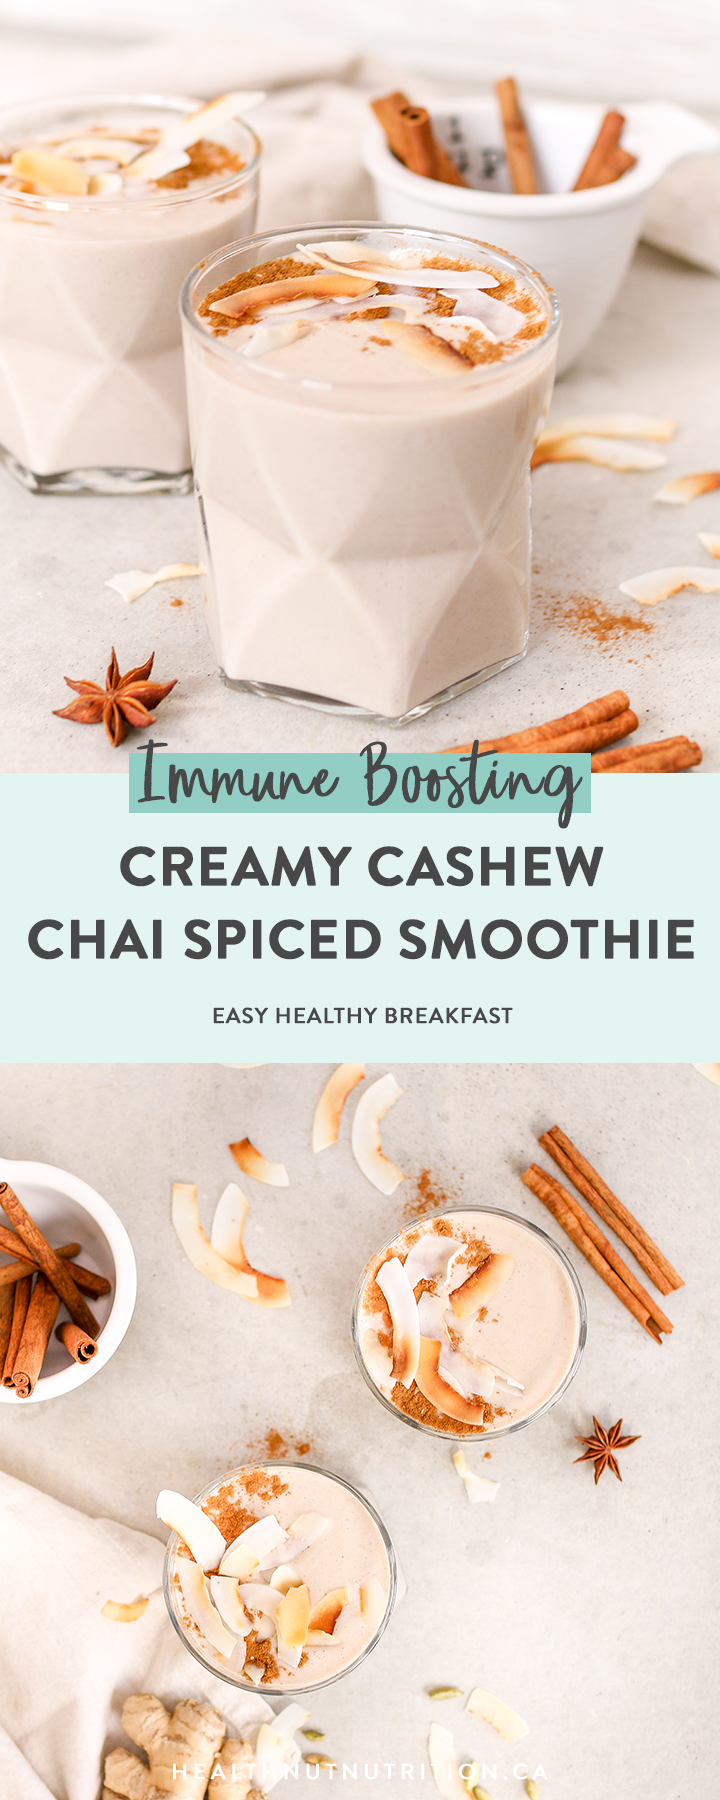 This Cashew Chai Spiced Smoothie is so creamy with warming spices like cinnamon, cardamom, nutmeg, and ginger. Ready in 5 minutes, this latte inspired smoothie for breakfast never looked so cozy!